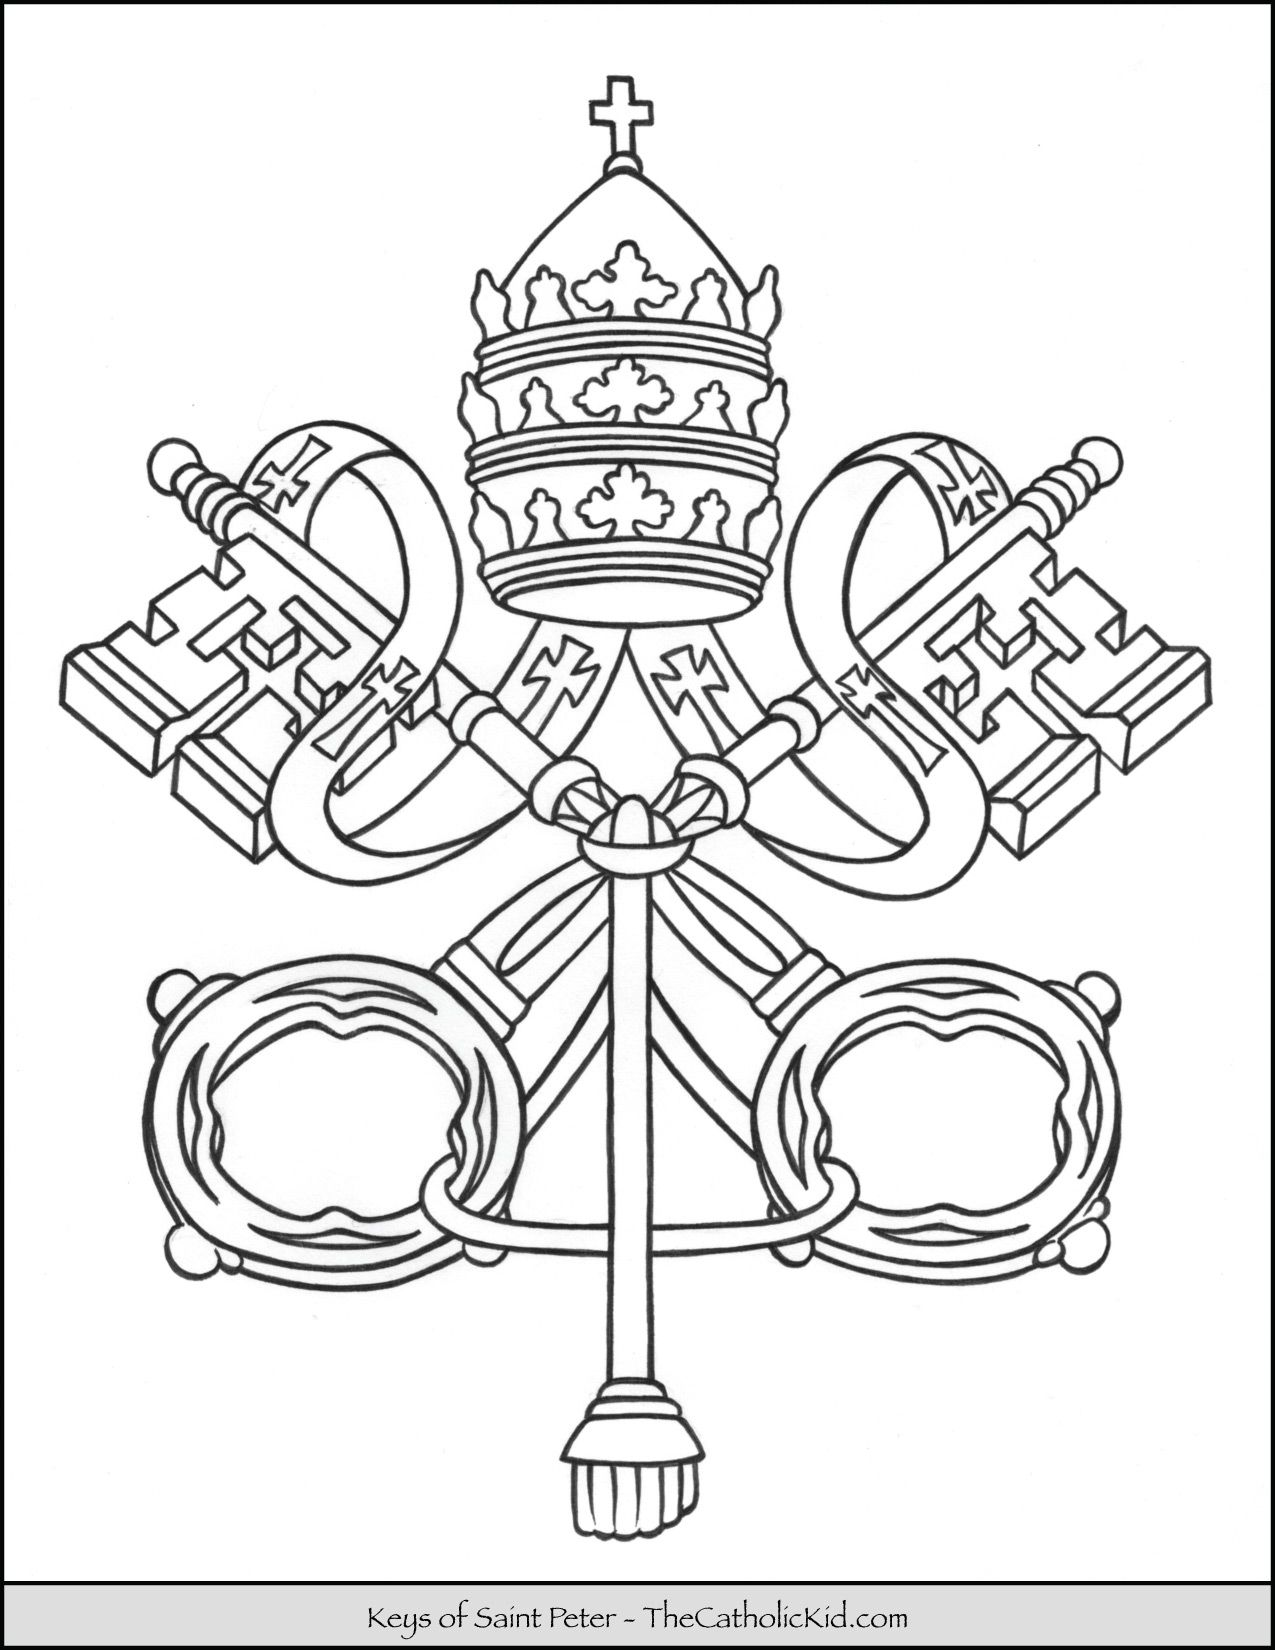 Keys Of Saint Peter Coloring Page Thecatholickid Com Catholic